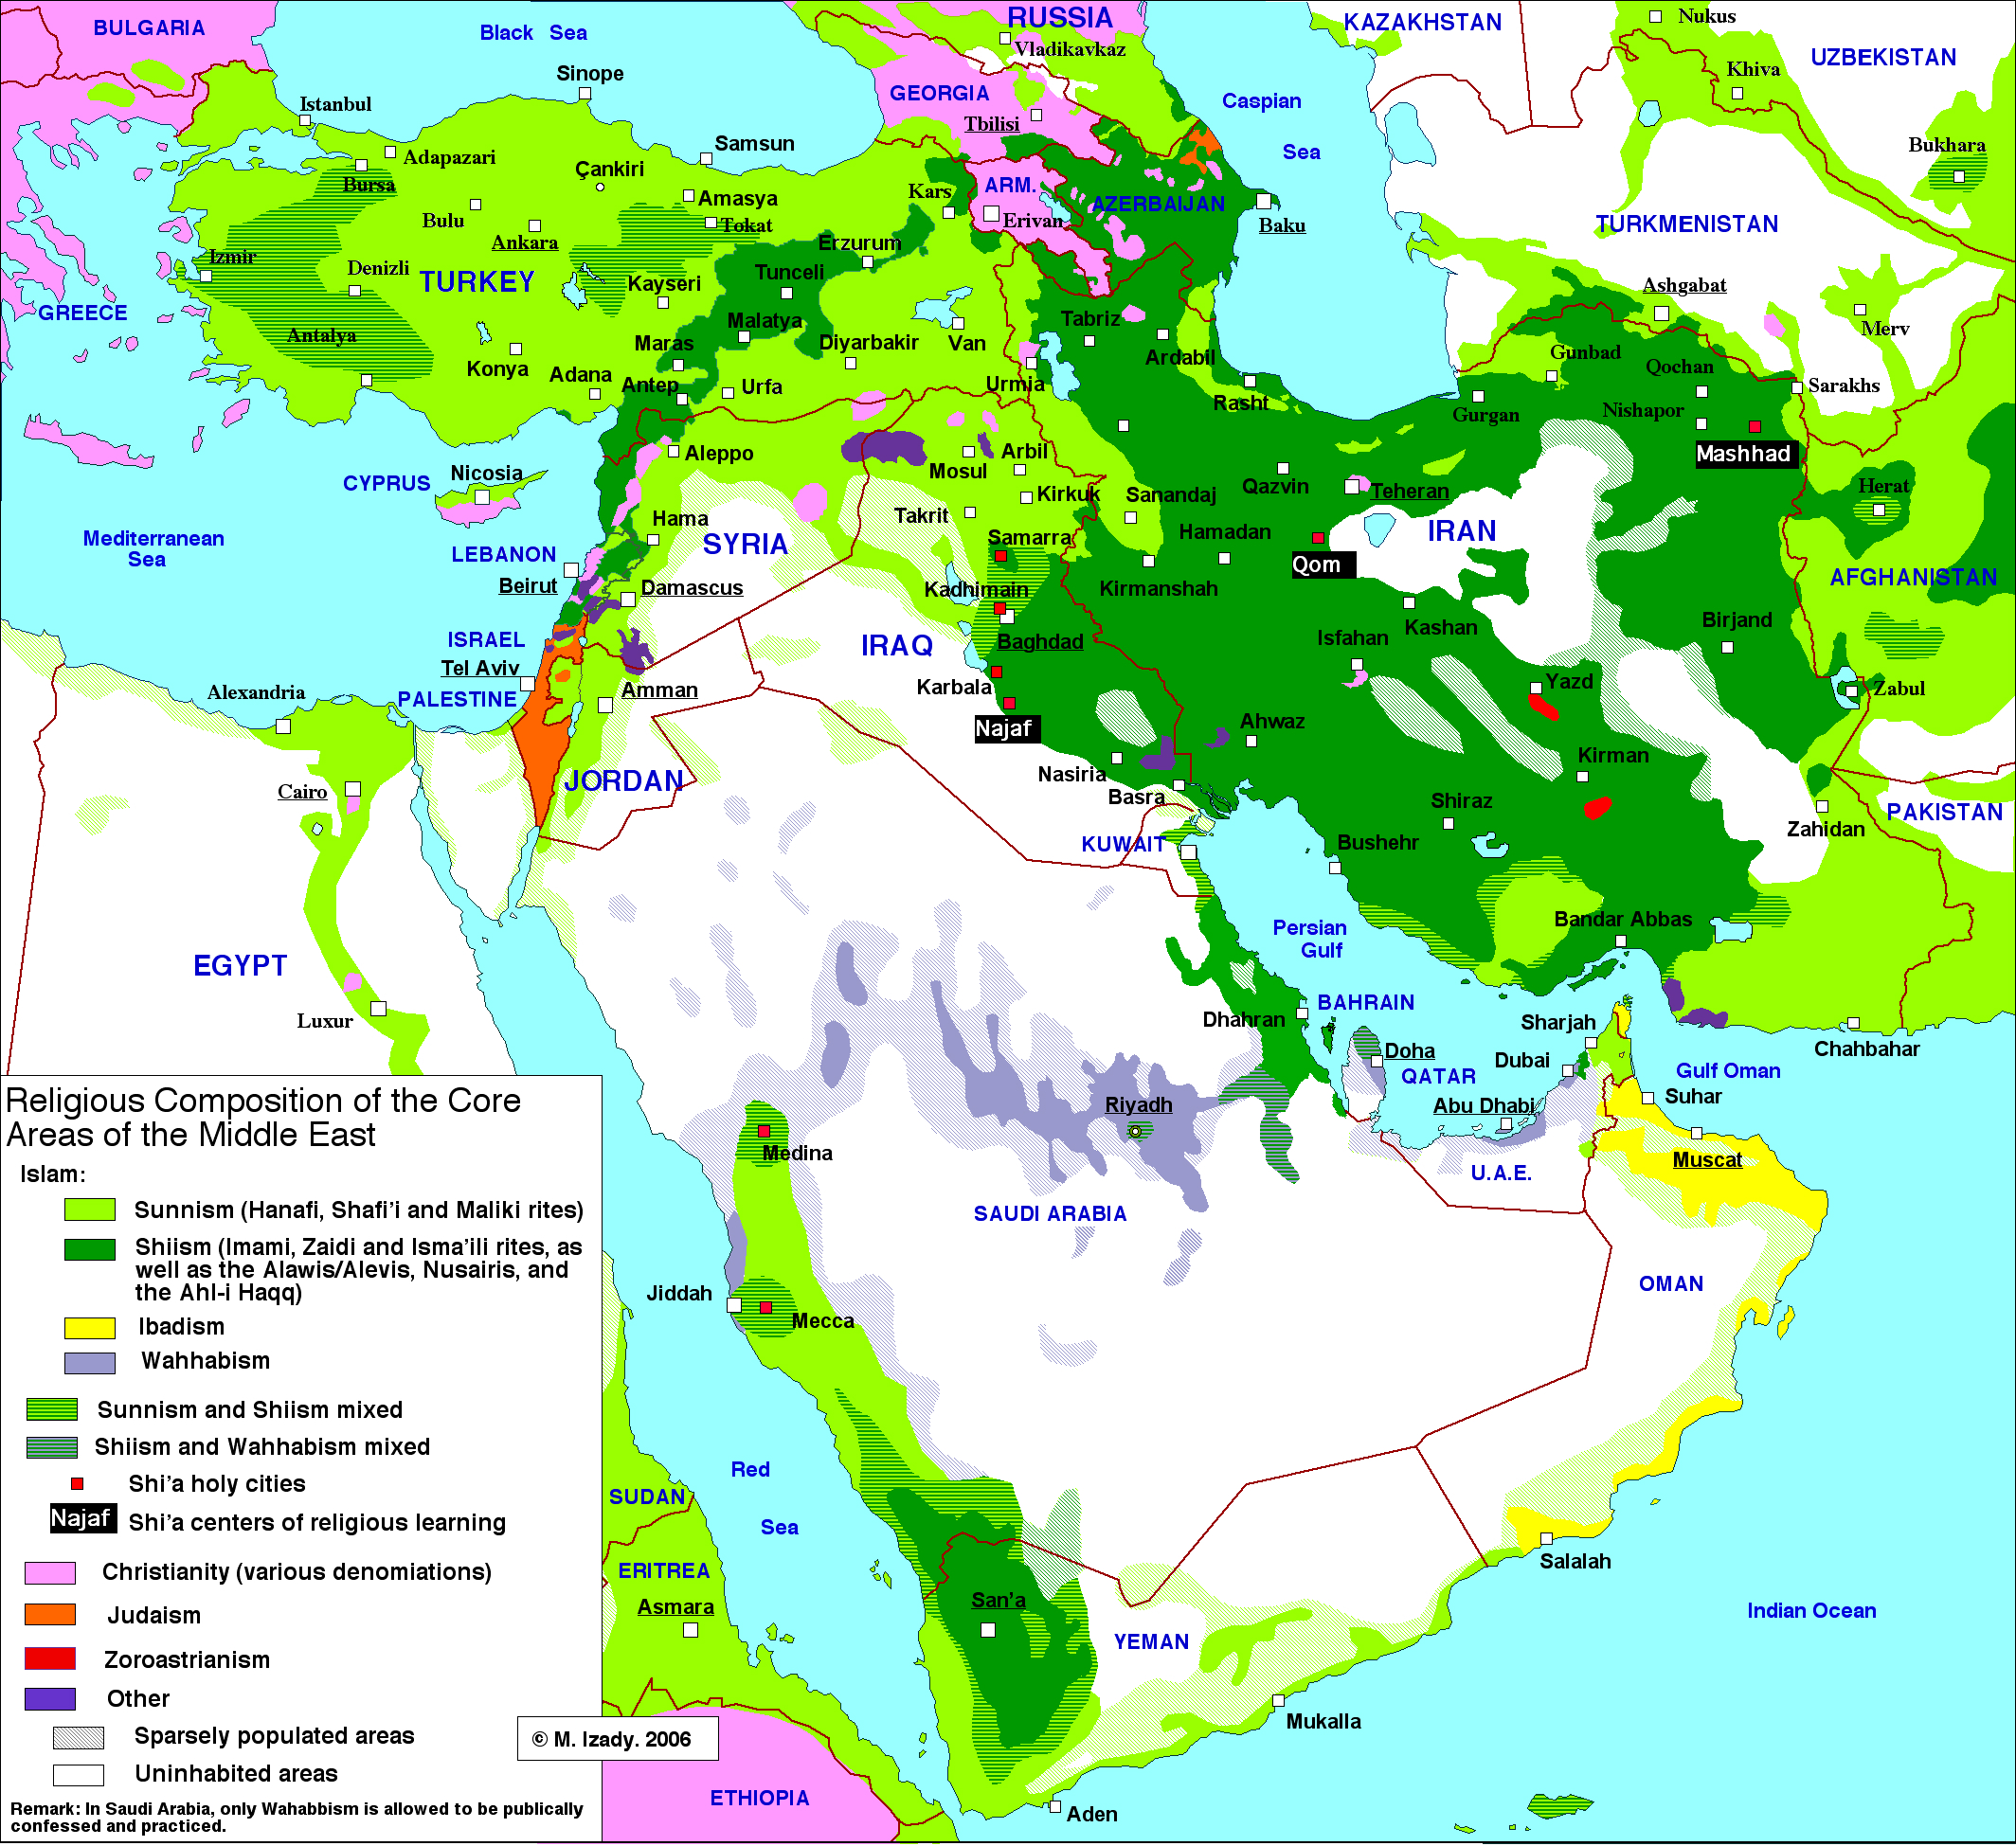 https://deepresource.files.wordpress.com/2015/03/middle-east-religious-composition-map.jpg